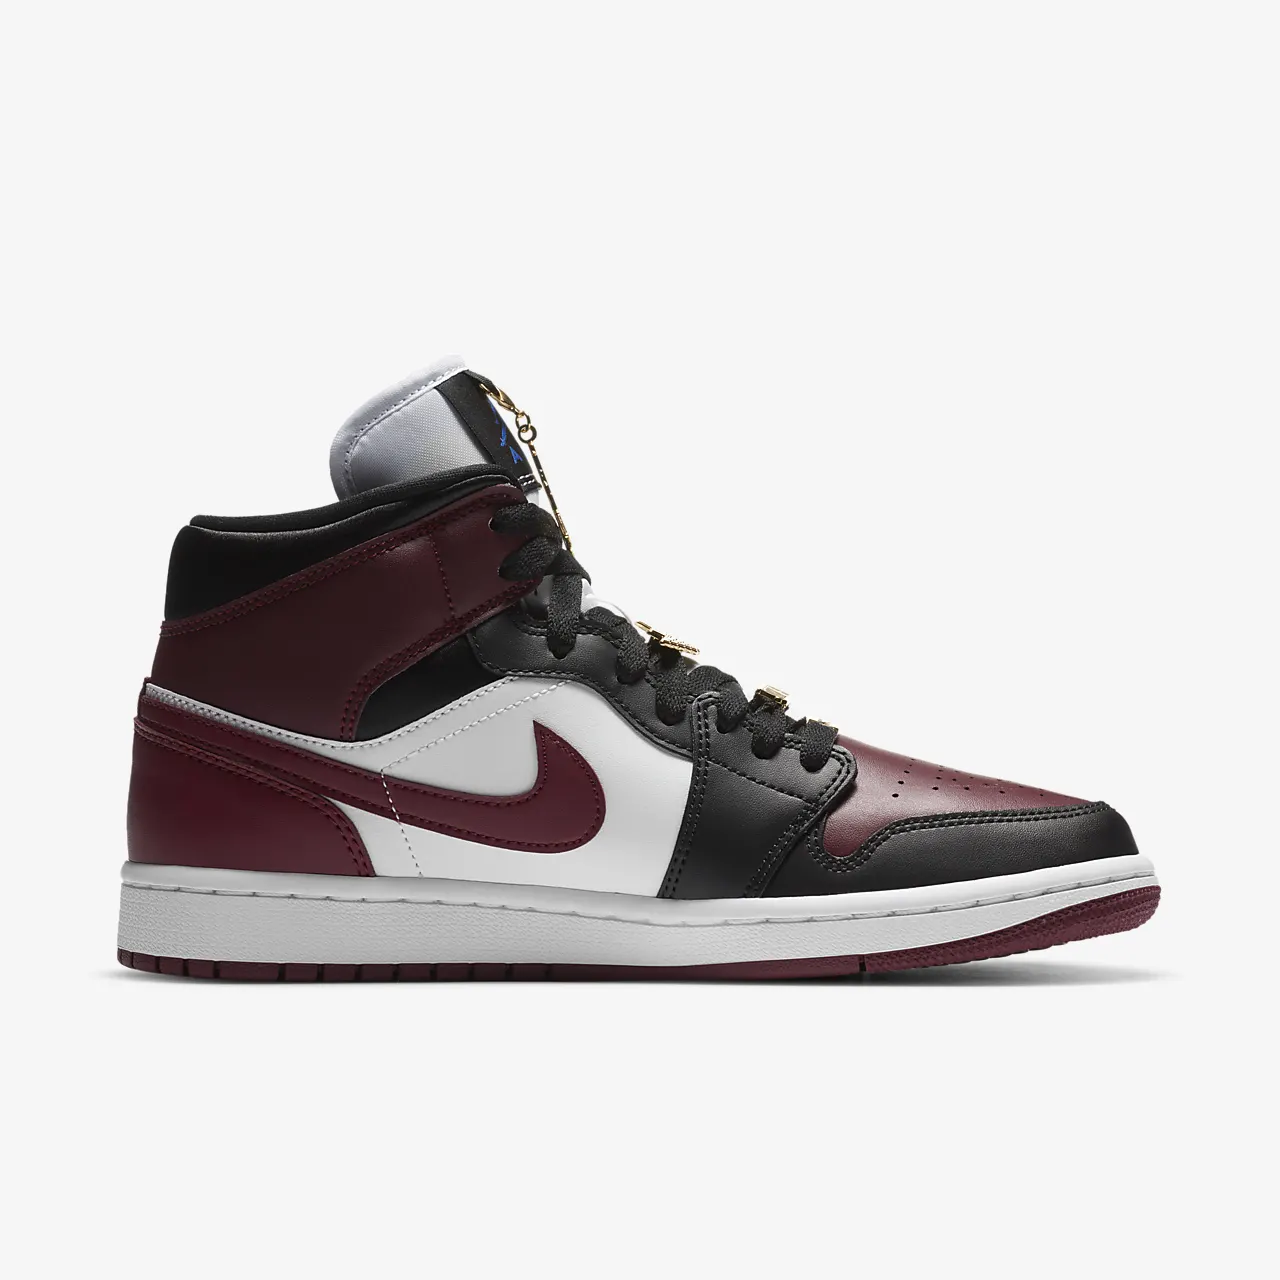 유럽직배송 나이키 NIKE Air Jordan 1 Mid SE Women's Shoe CZ4385-016